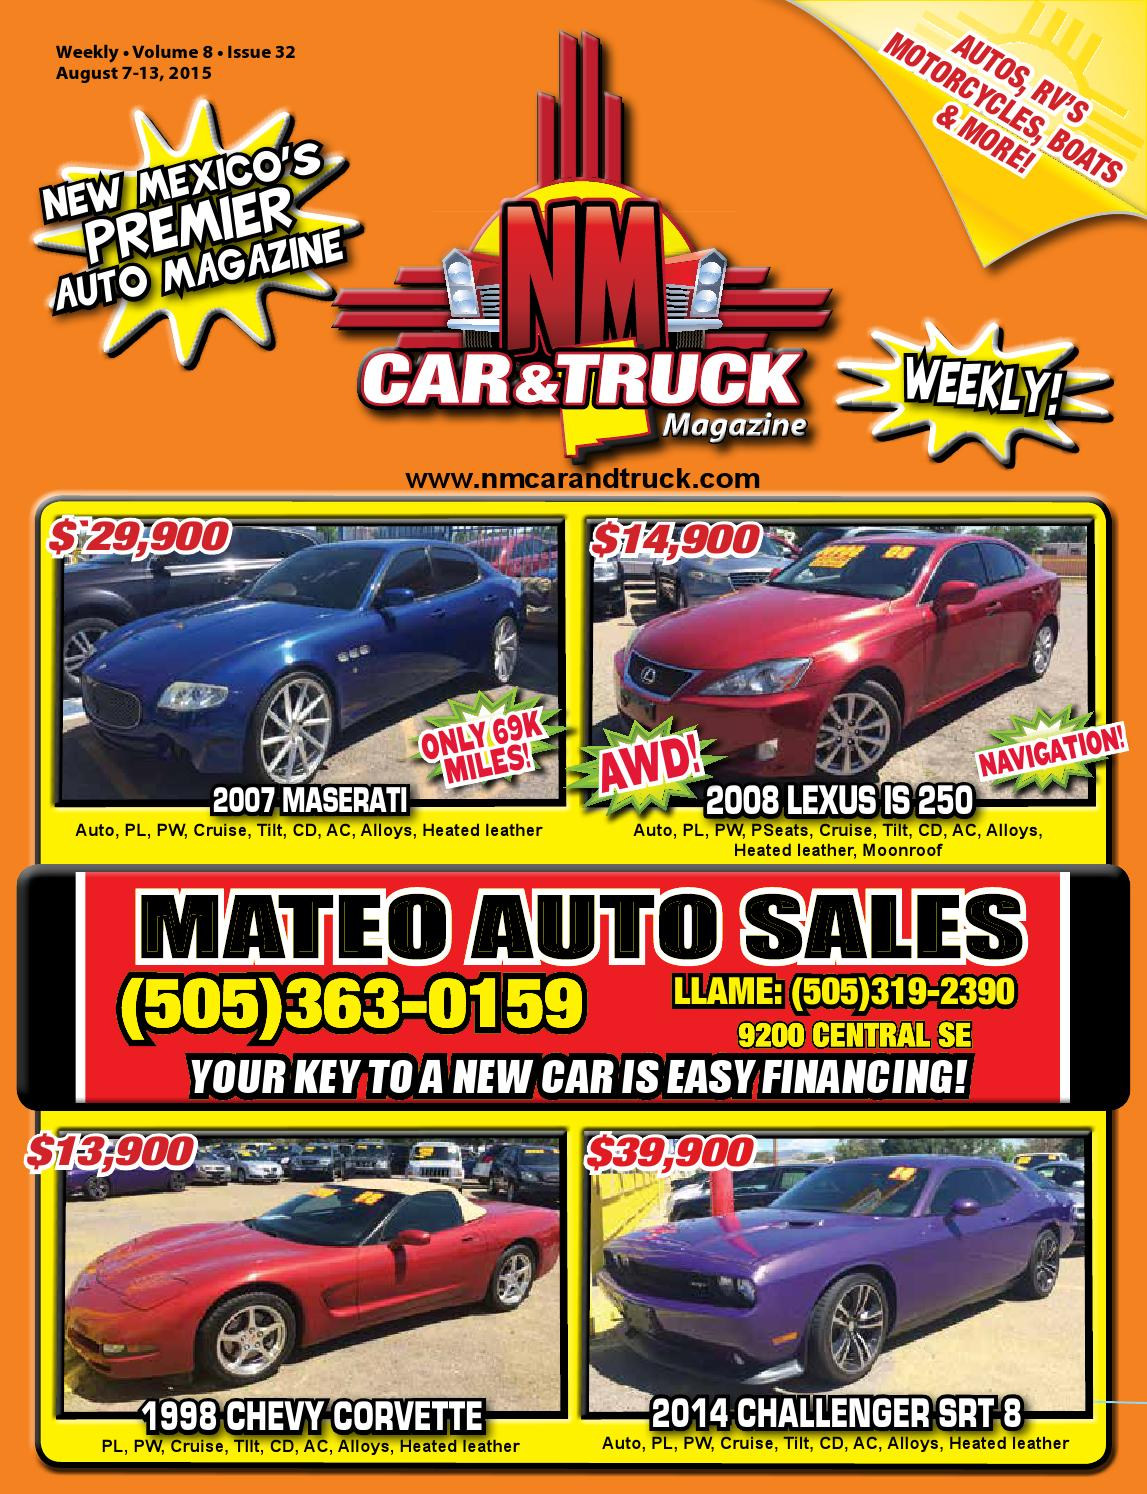 Nm car and truck magazine issue 32 by nm car and truck magazine official issuu